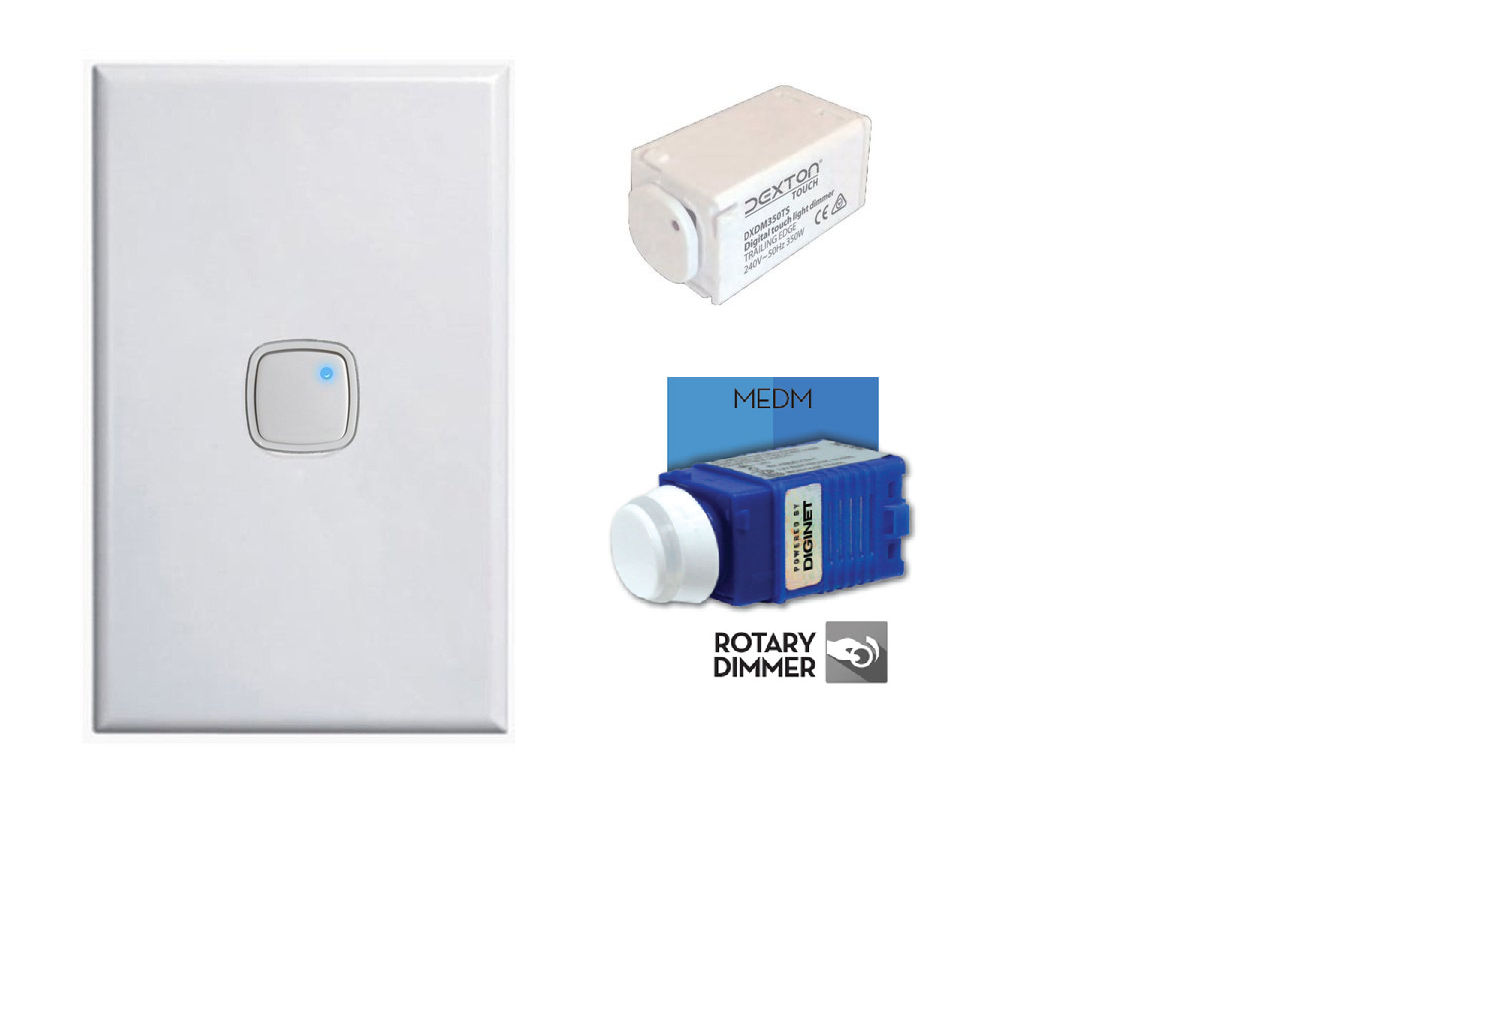 separation shoes 954e4 03779 The Best LED Dimmers To Buy - The Lighting Outlet